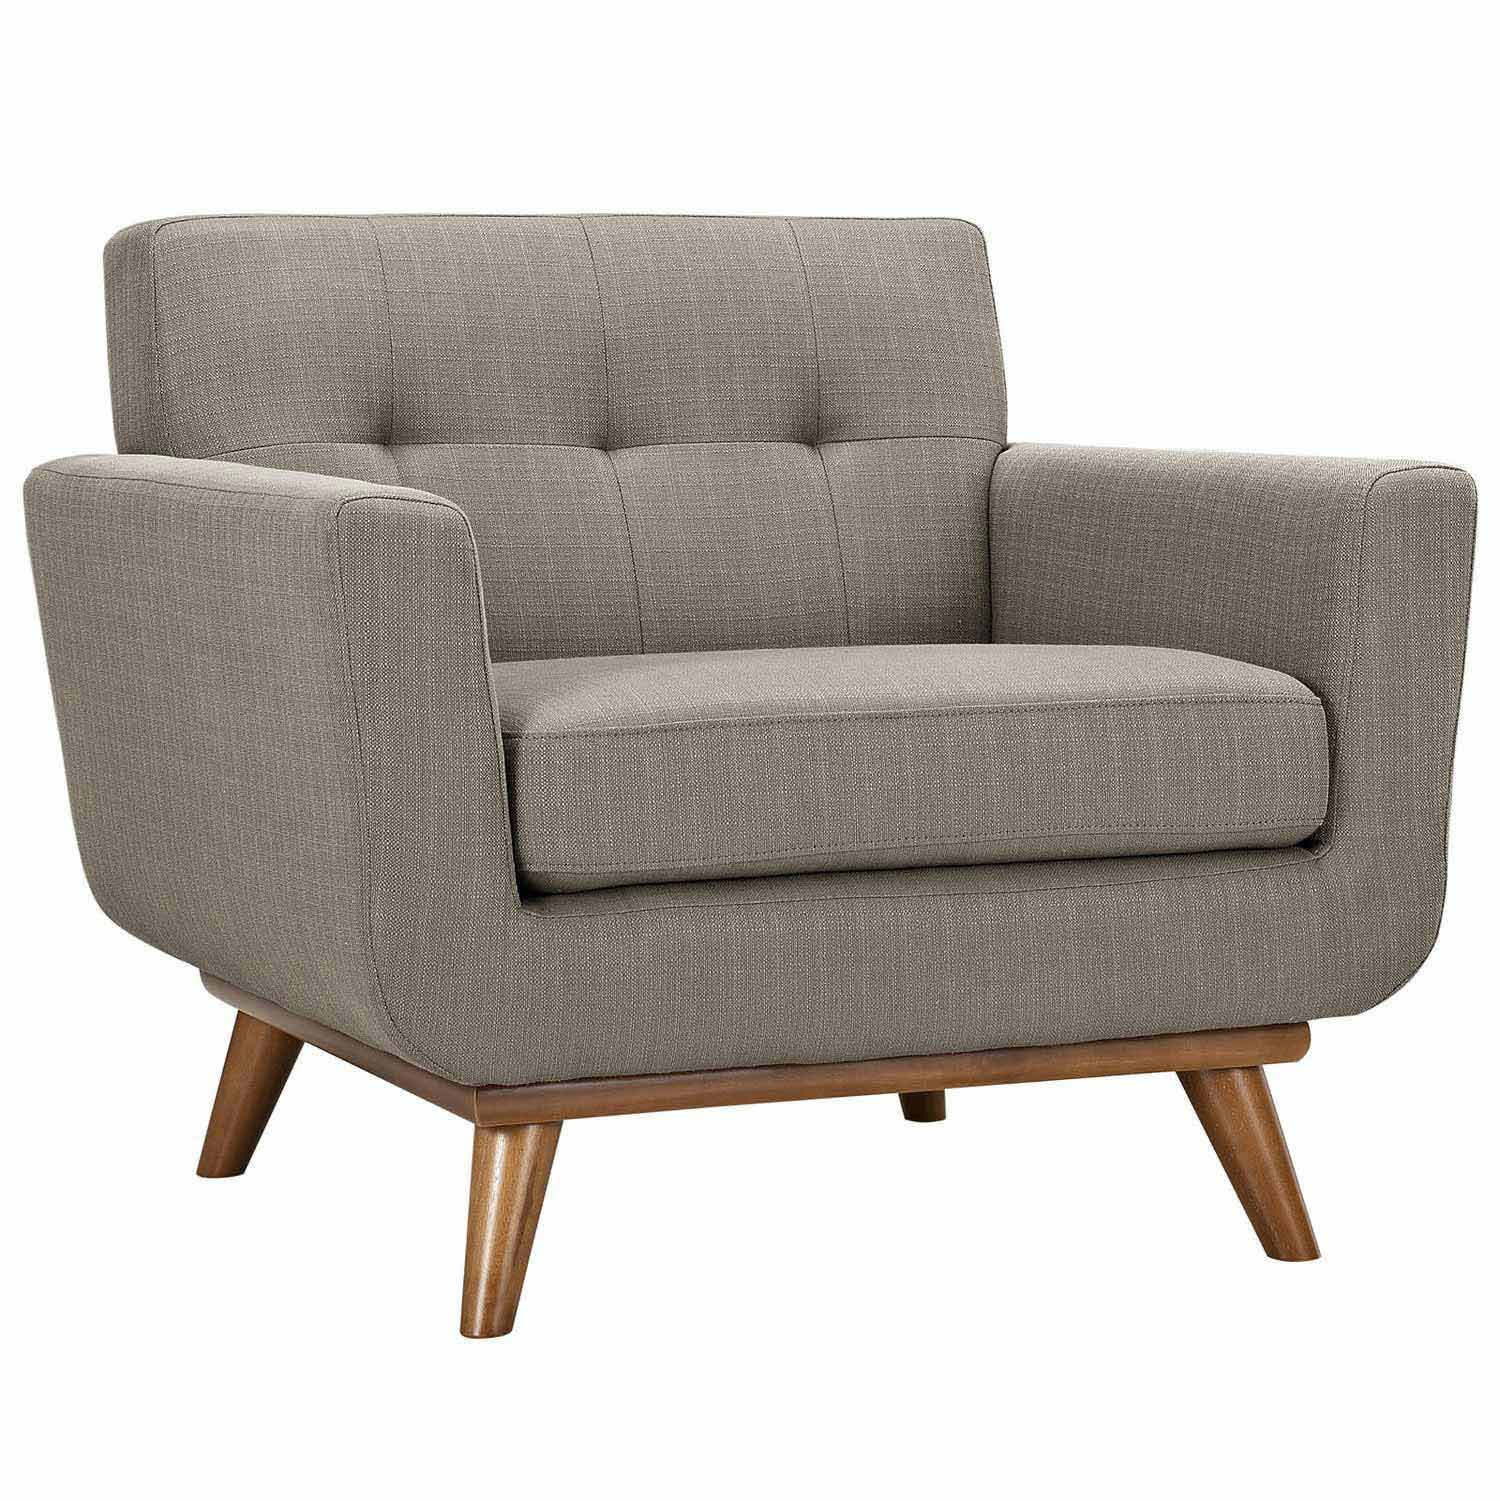 Modway Engage 3 PC Sofa Loveseat and Armchair Set - Granite